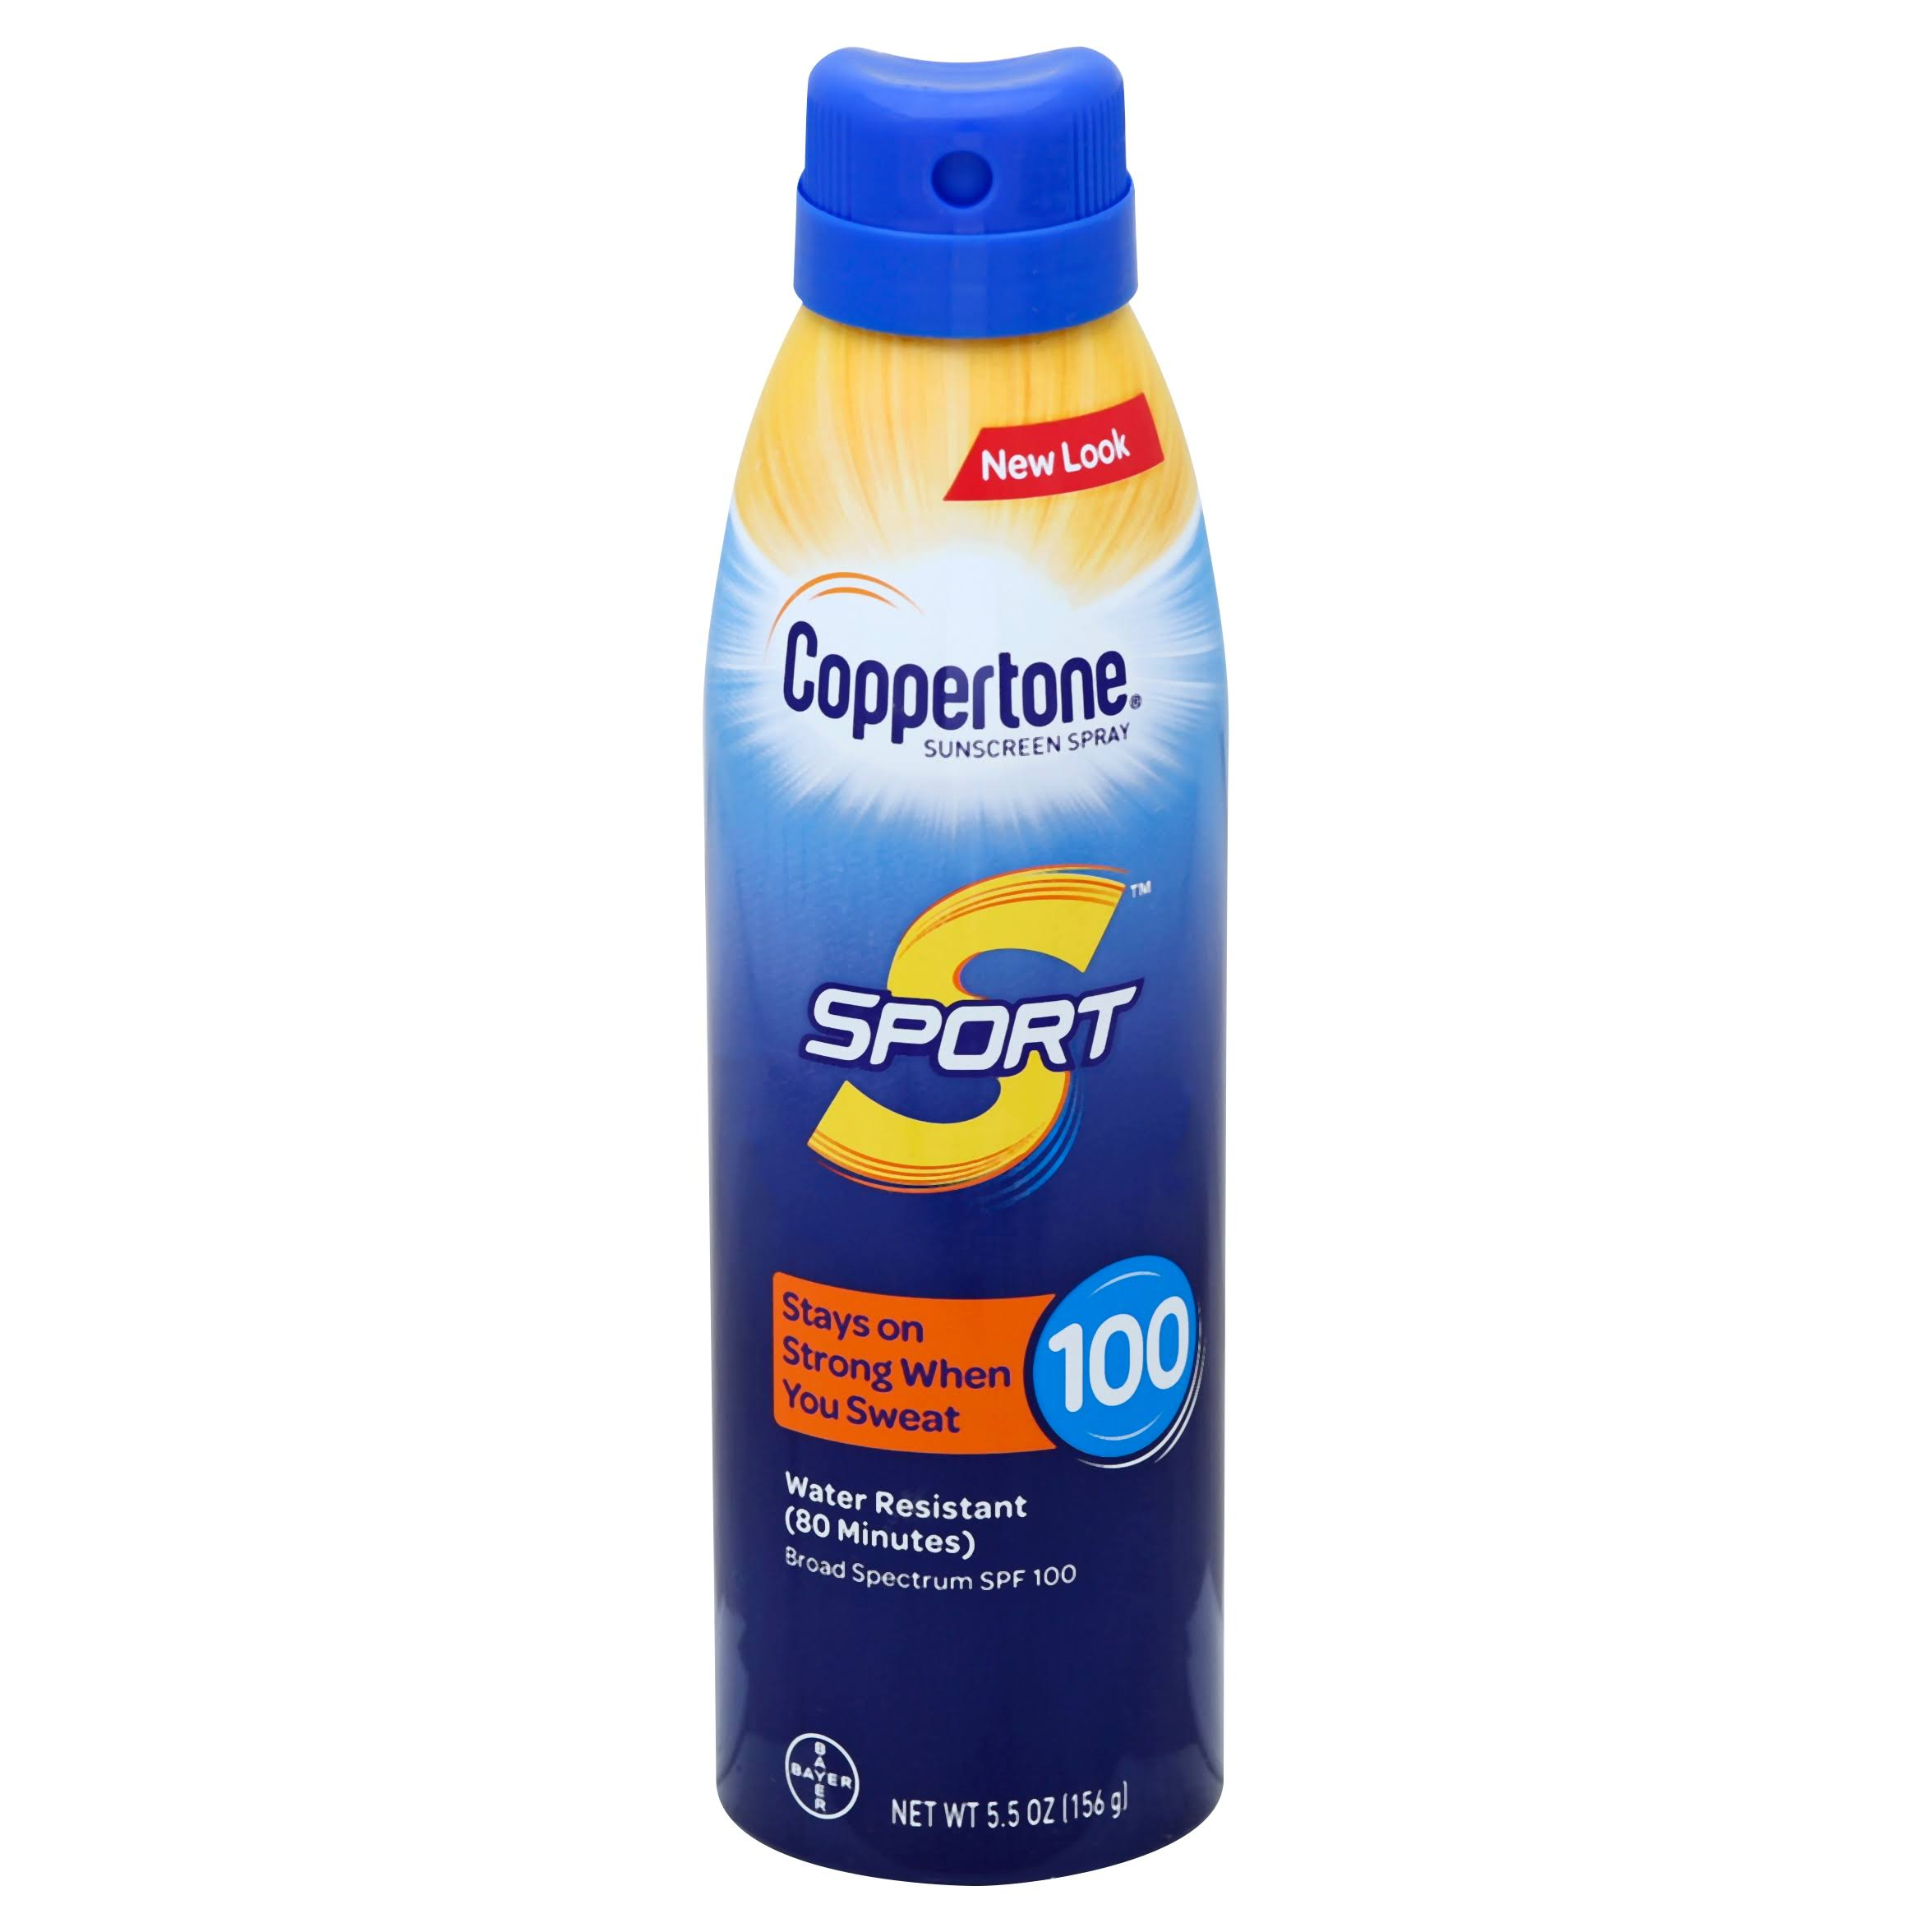 Coppertone Sport Sunscreen Continuous Spray - SPF 100, 5.5oz